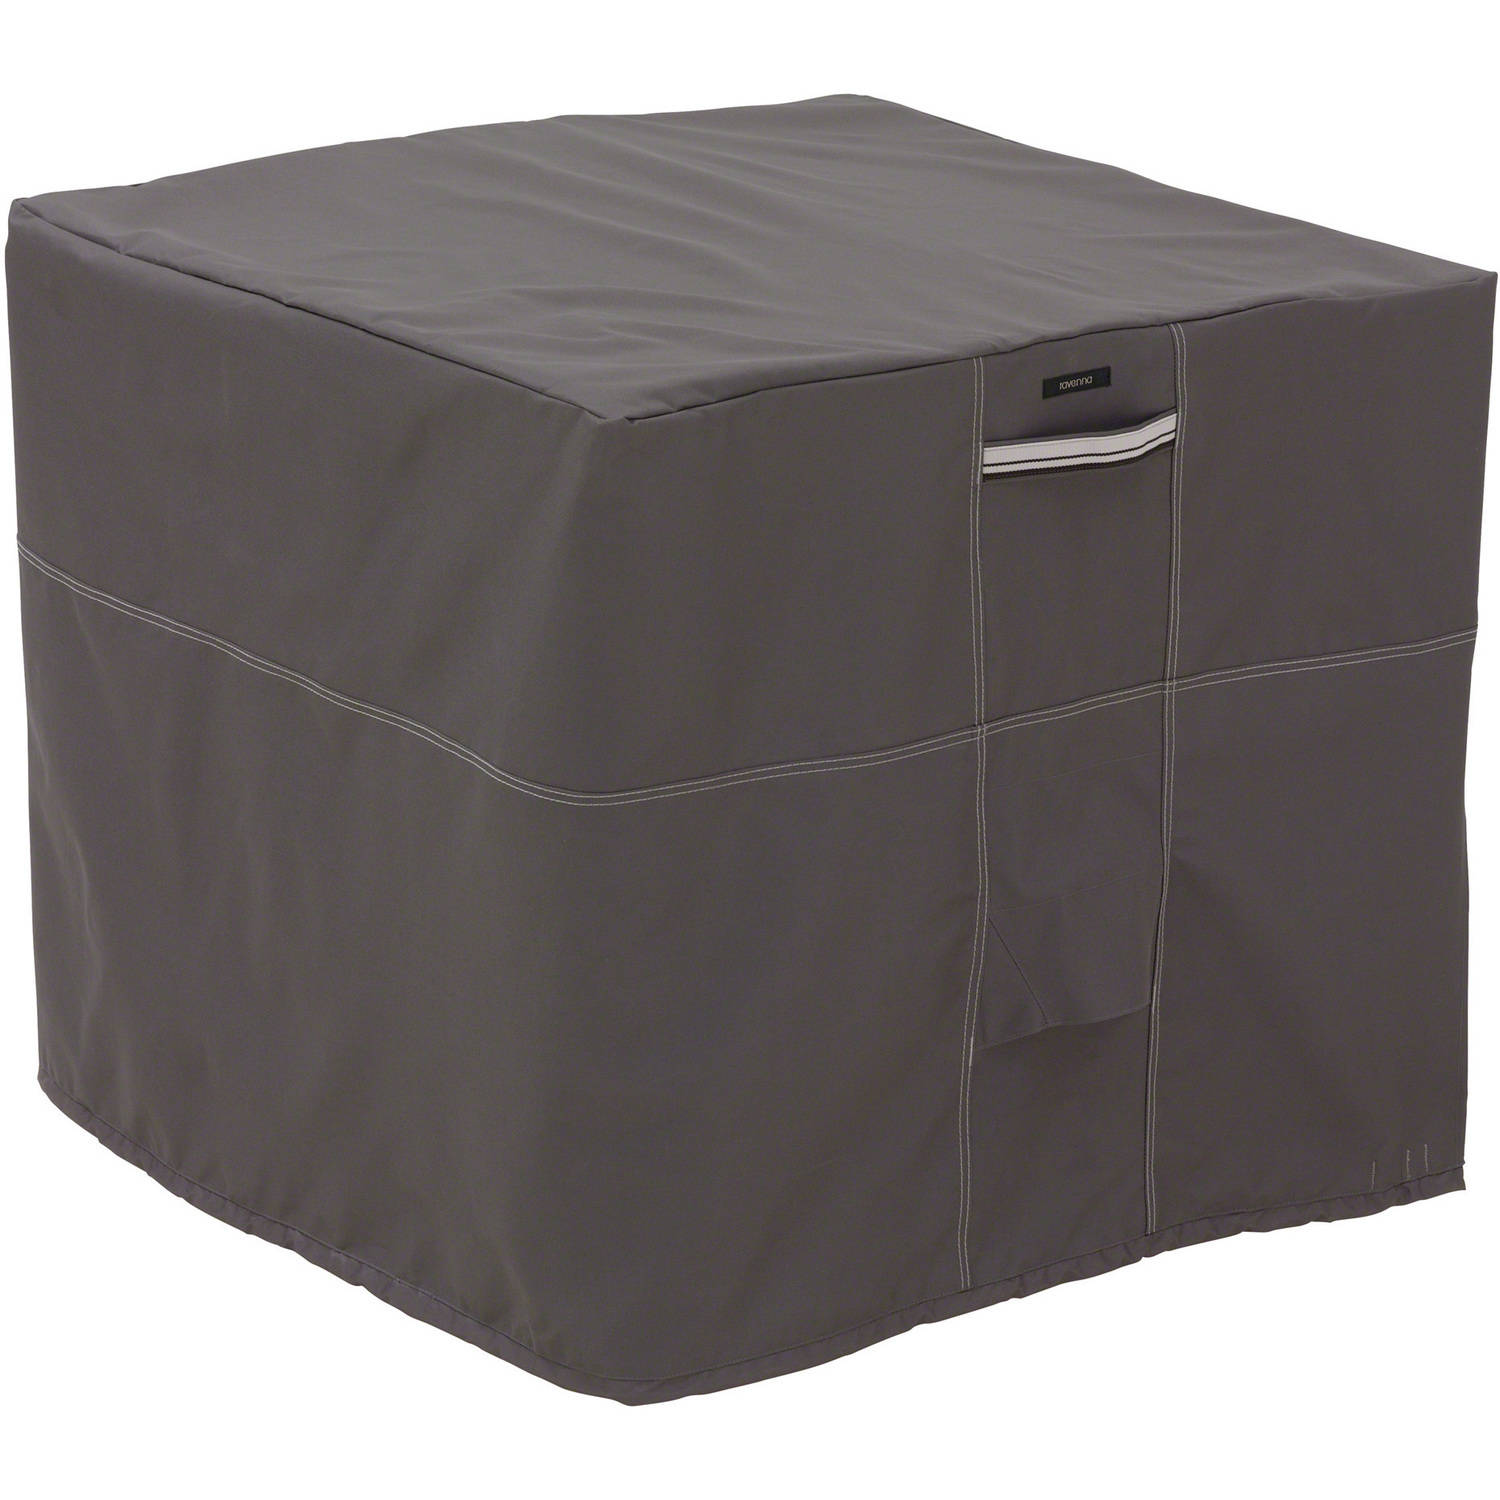 Classic Accessories Ravenna Air Conditioner Storage Cover, Taupe